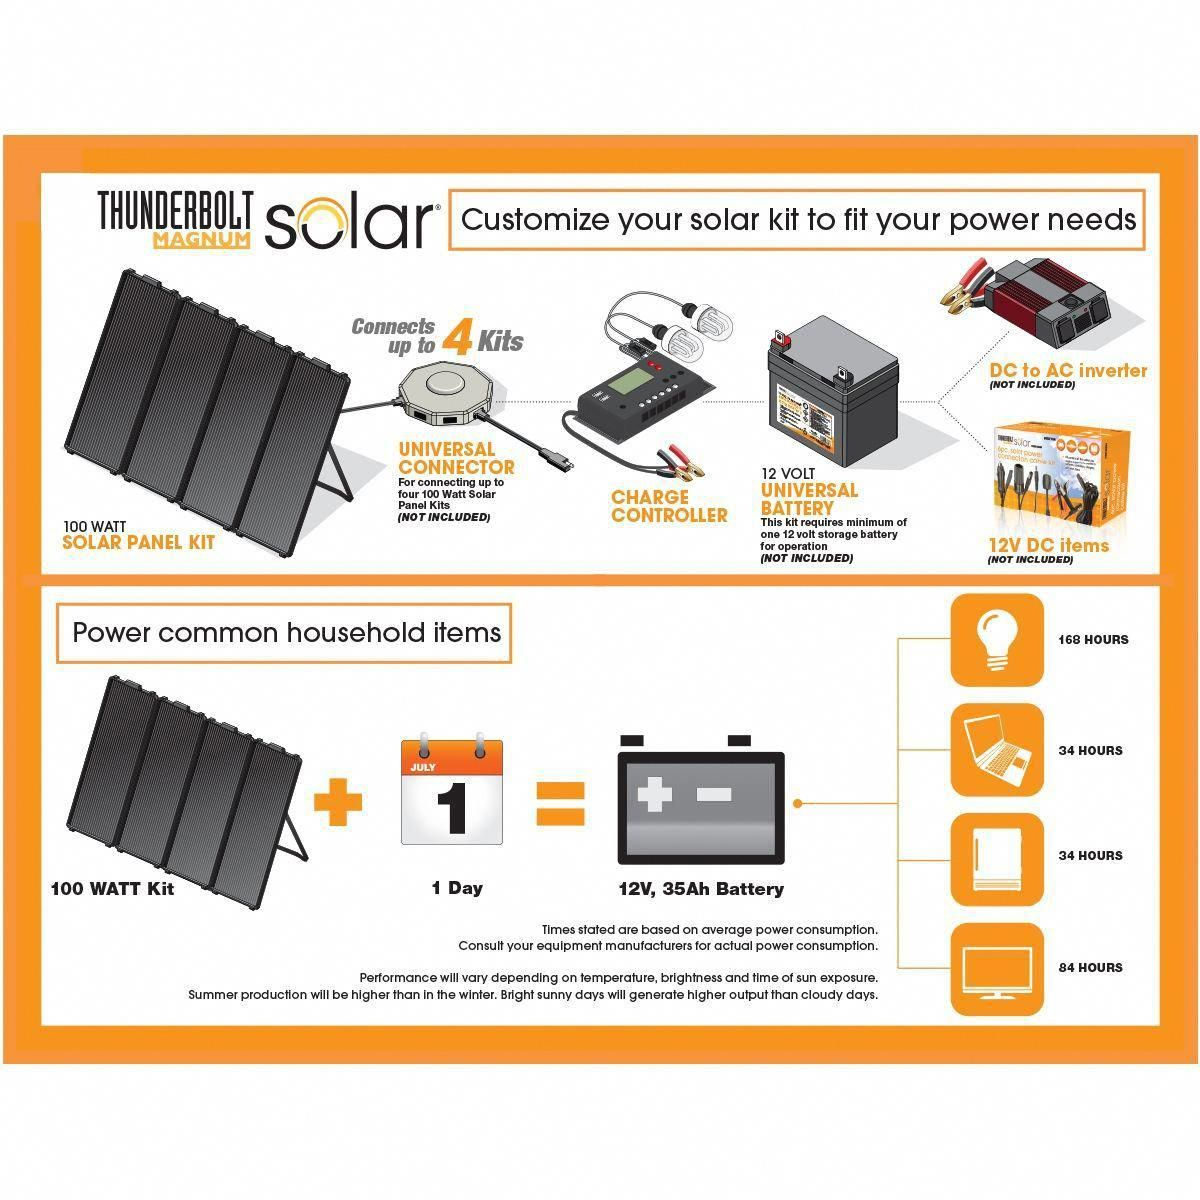 100 Watt Solar Panel Kit In 2020 100 Watt Solar Panel Solar Energy Kits Solar Panel Kits